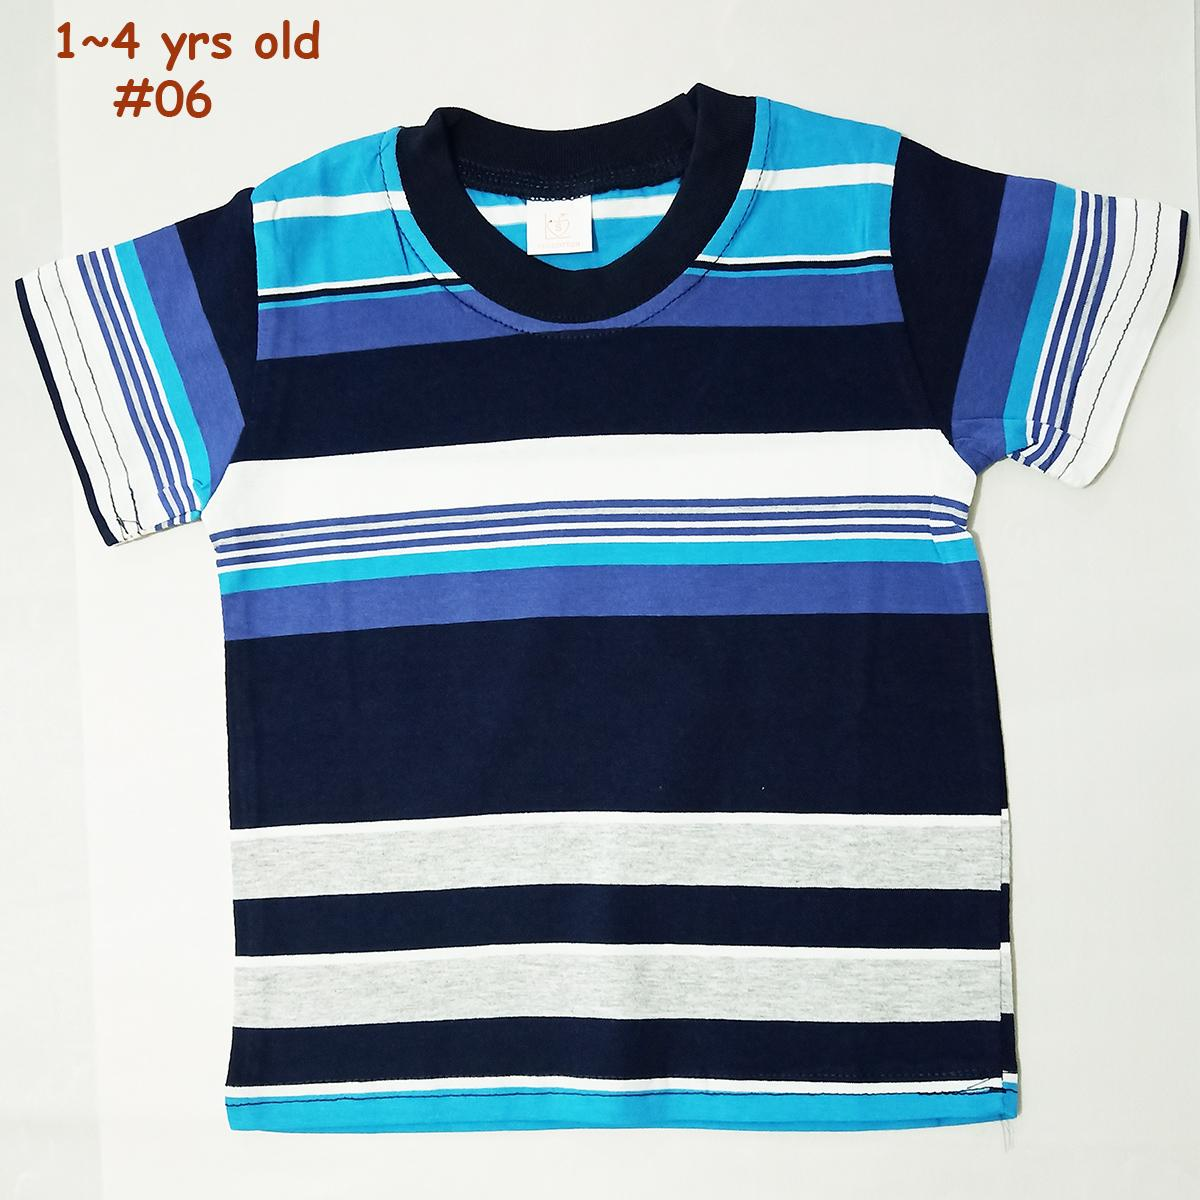 c51f4ef2c305 T-shirt for kids Summer Short Sleeves Tops Cloth for Kids Child's gift